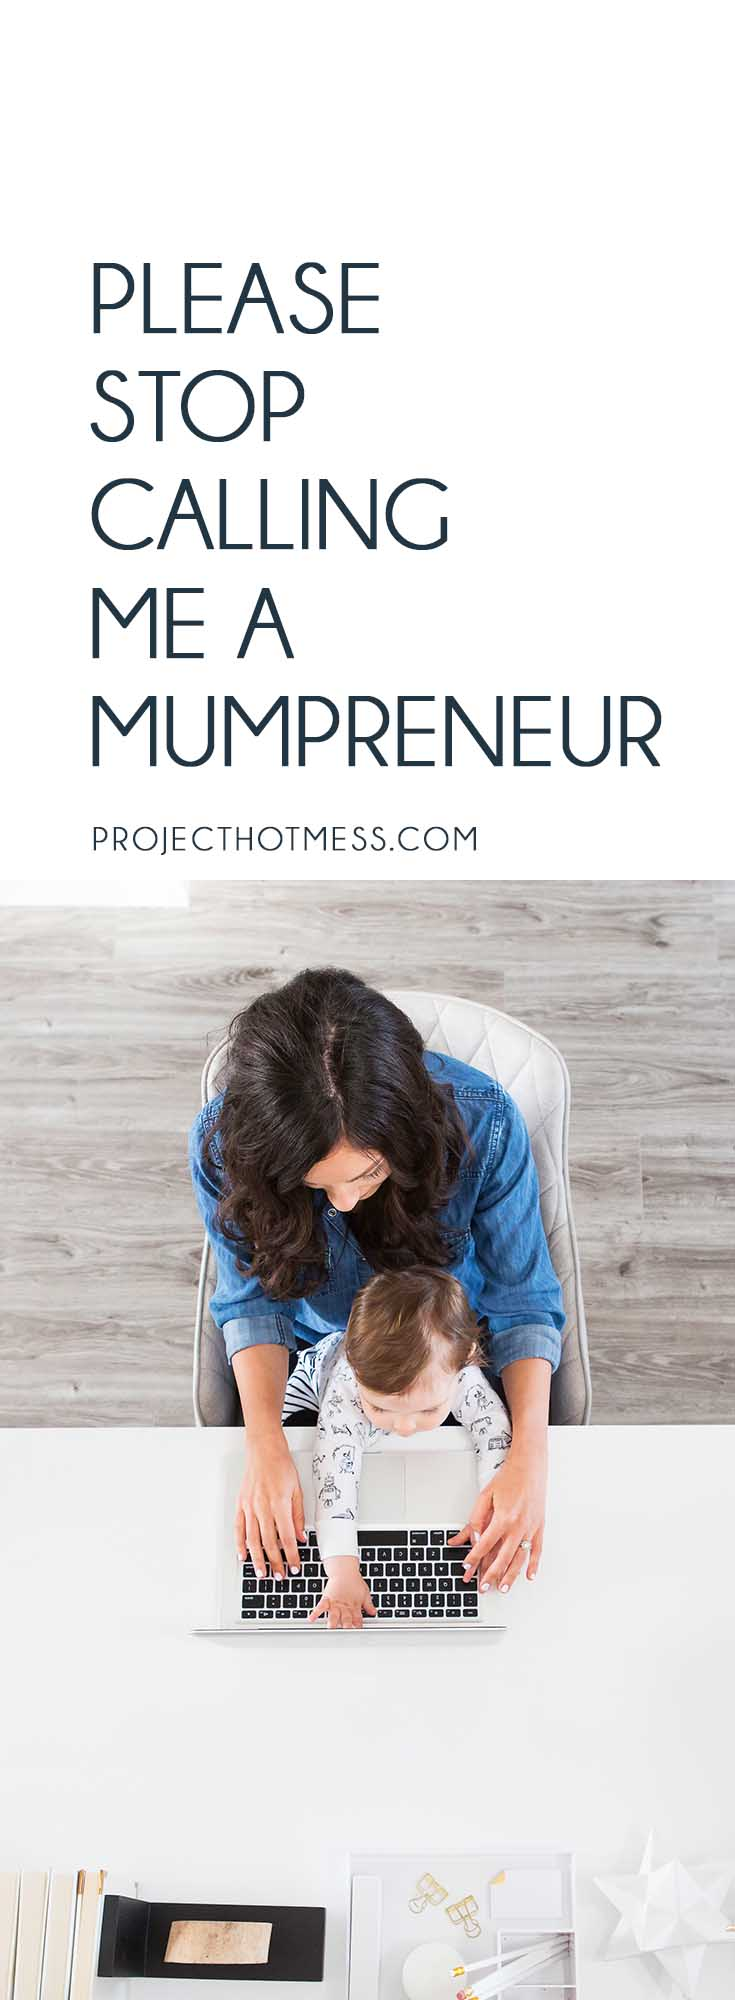 There's one word that really gets under my skin, 'Mumpreneur'. I offer so much more to business and society than simply being defined by being 'just a Mum'. Parenting   Parenting Advice   Mom Life   Parenting Goals   Parenting Ideas   Parenting Tips   Parenting Types   Parenting Hacks   Positive Parenting   Parenthood   Motherhood   Surviving Motherhood   Entrepreneur   Mumpreneur   Working Mum   Work at Home Mum